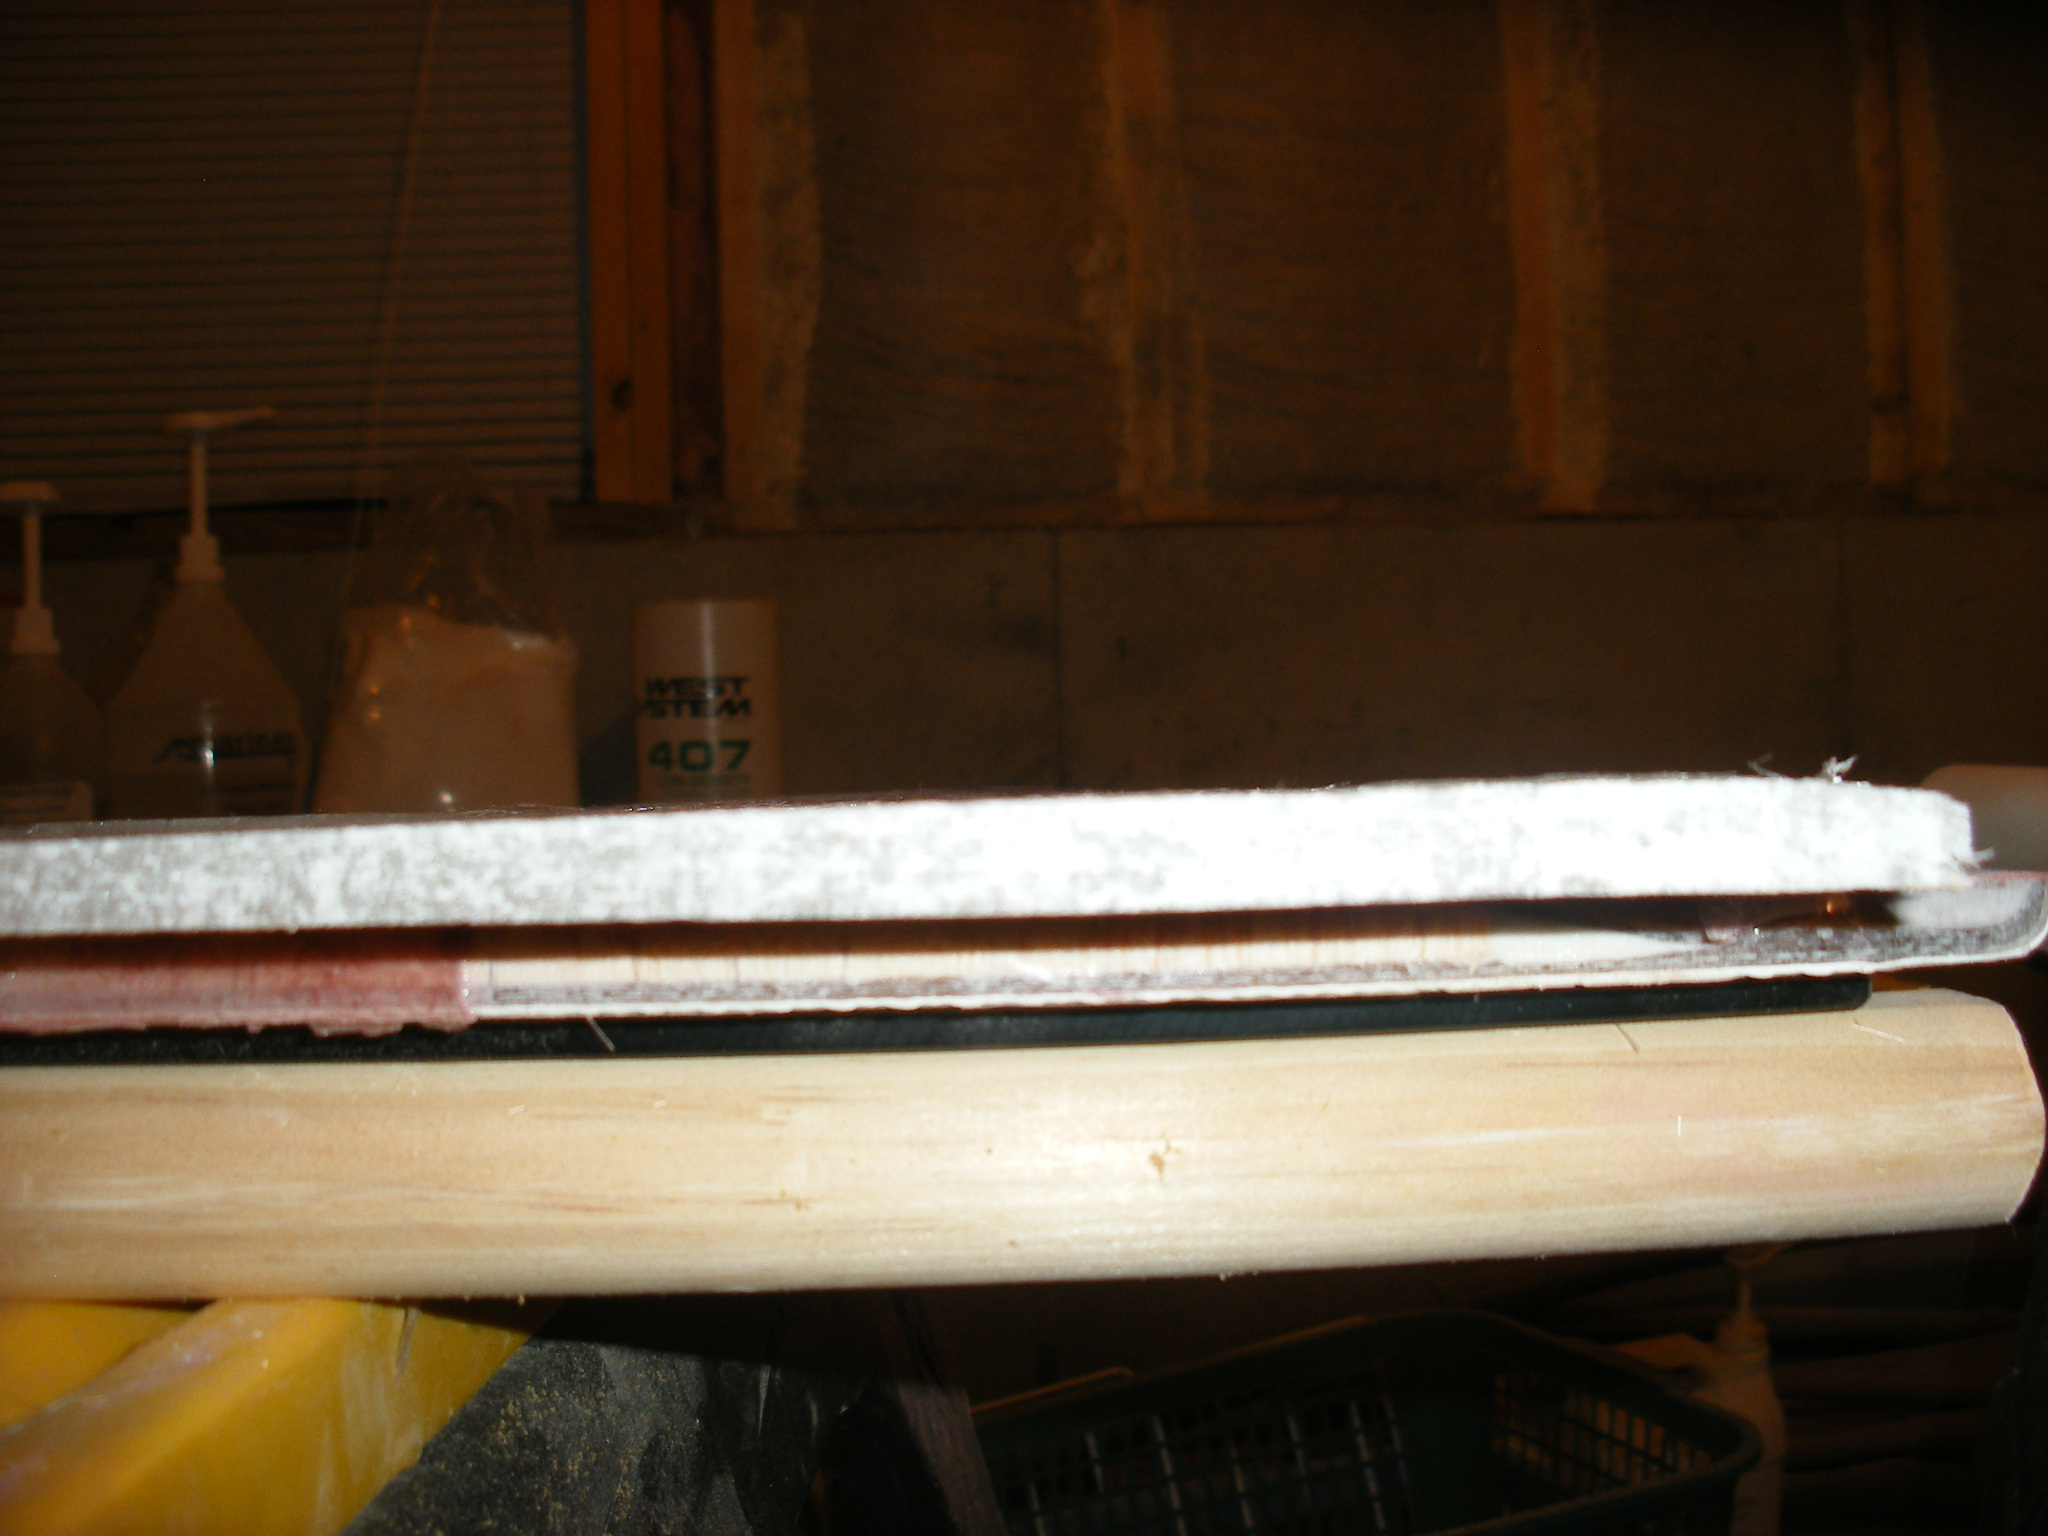 "1/2"" fiberglass bonded to the original lid.  Balsa wood core sealed with epoxy."